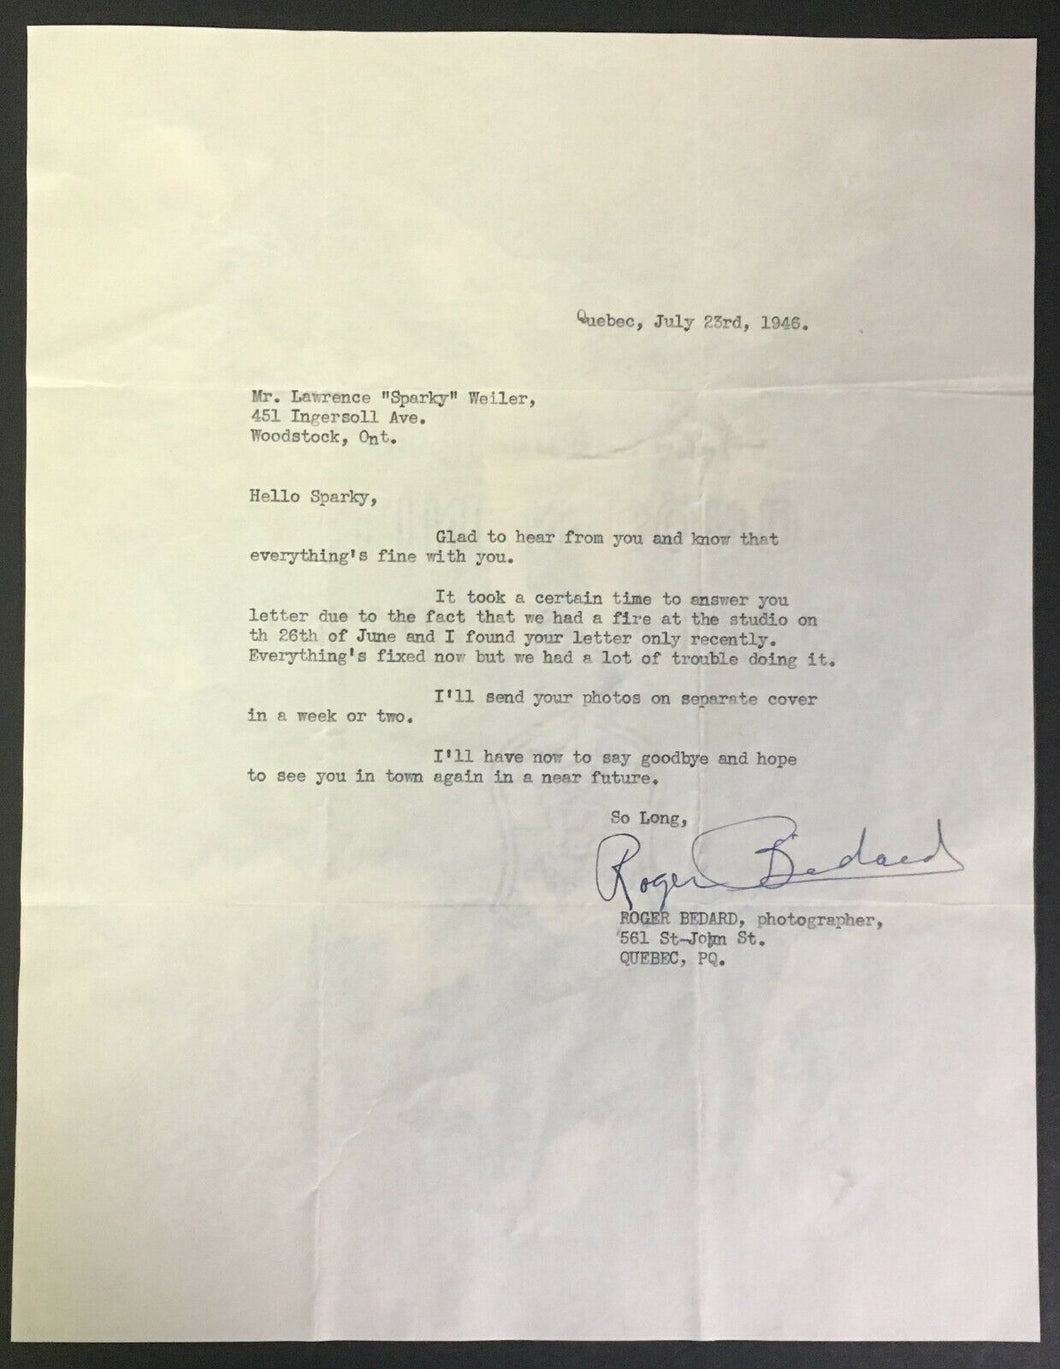 1946 NHL Hockey Photographer Roger Bedard Signed Letter Montreal Canadiens